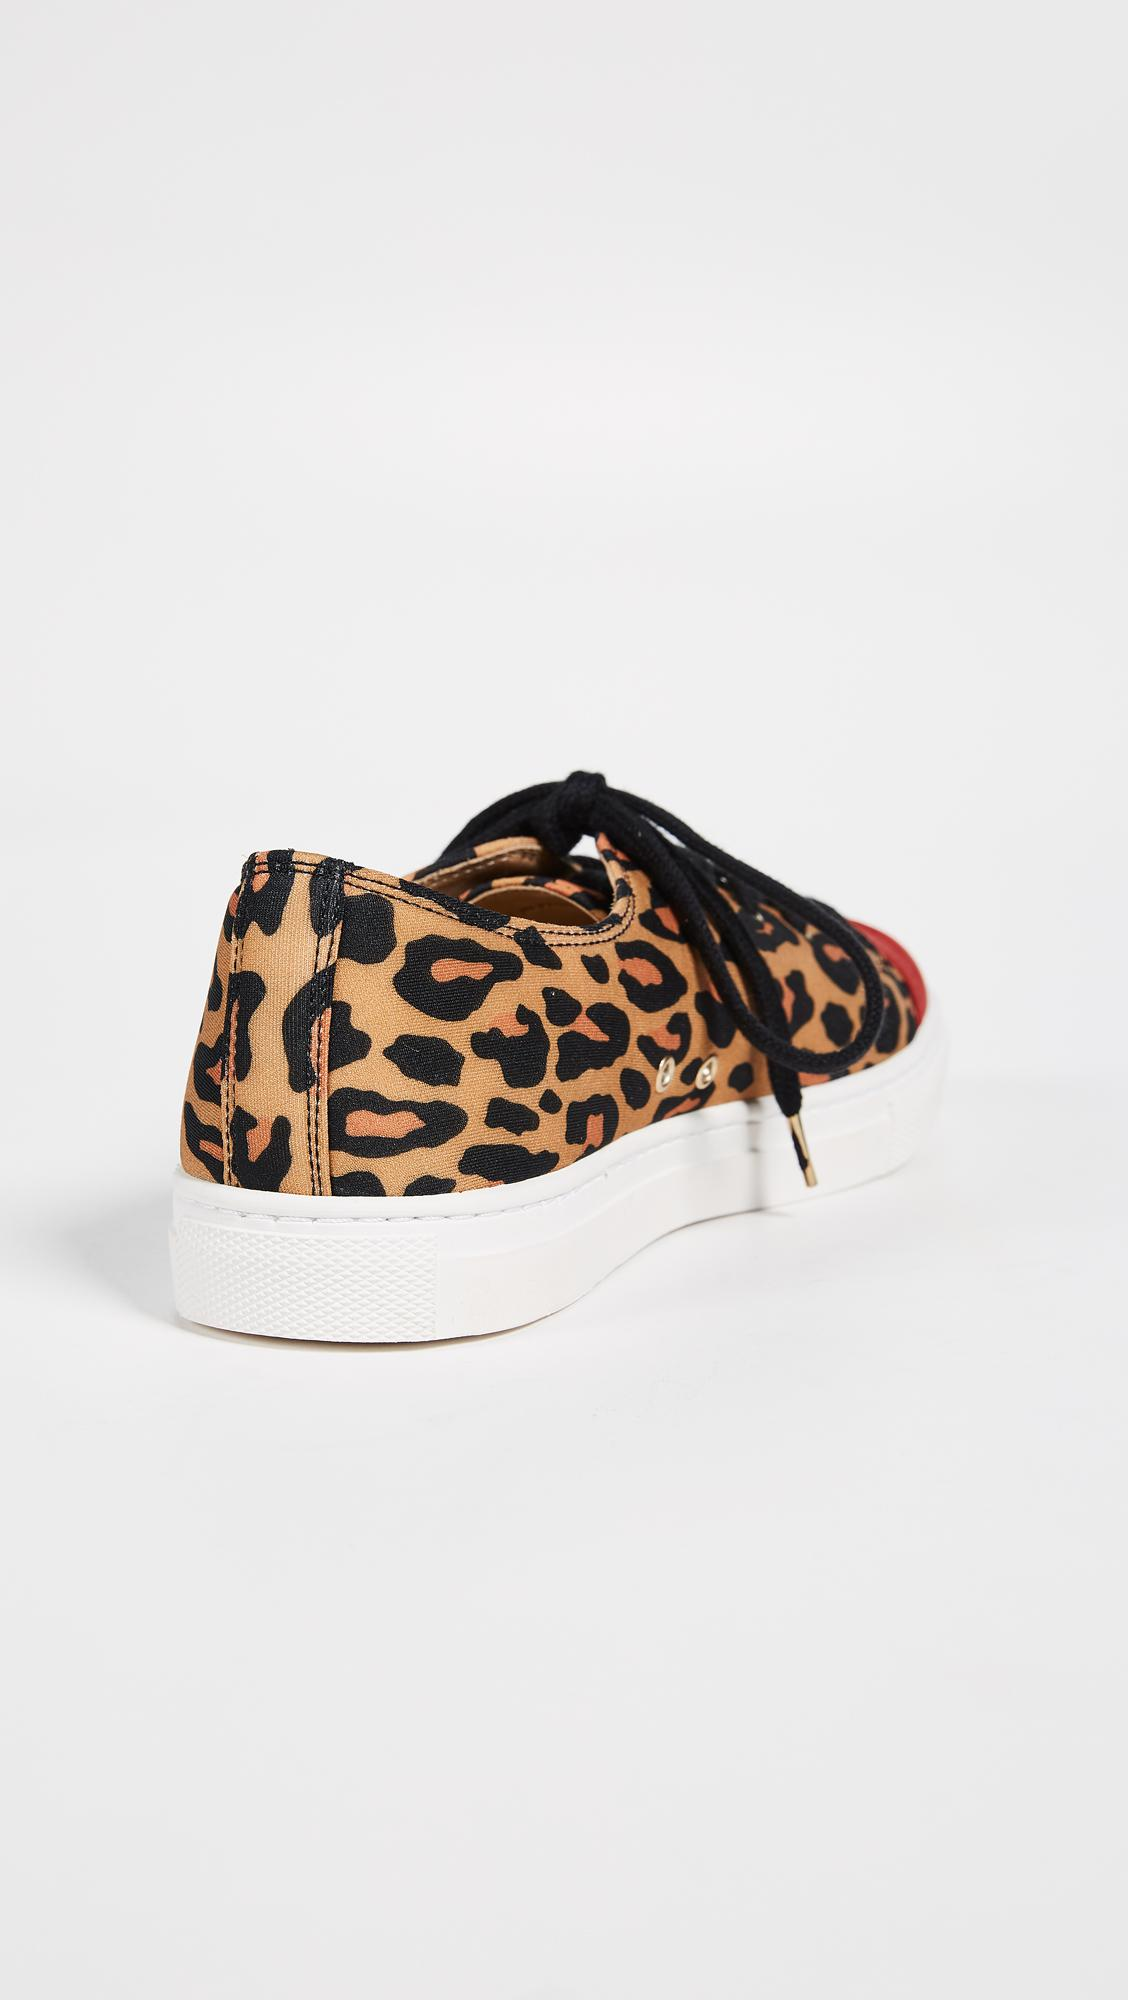 Charlotte Olympia Leather Kiss Me Sneakers